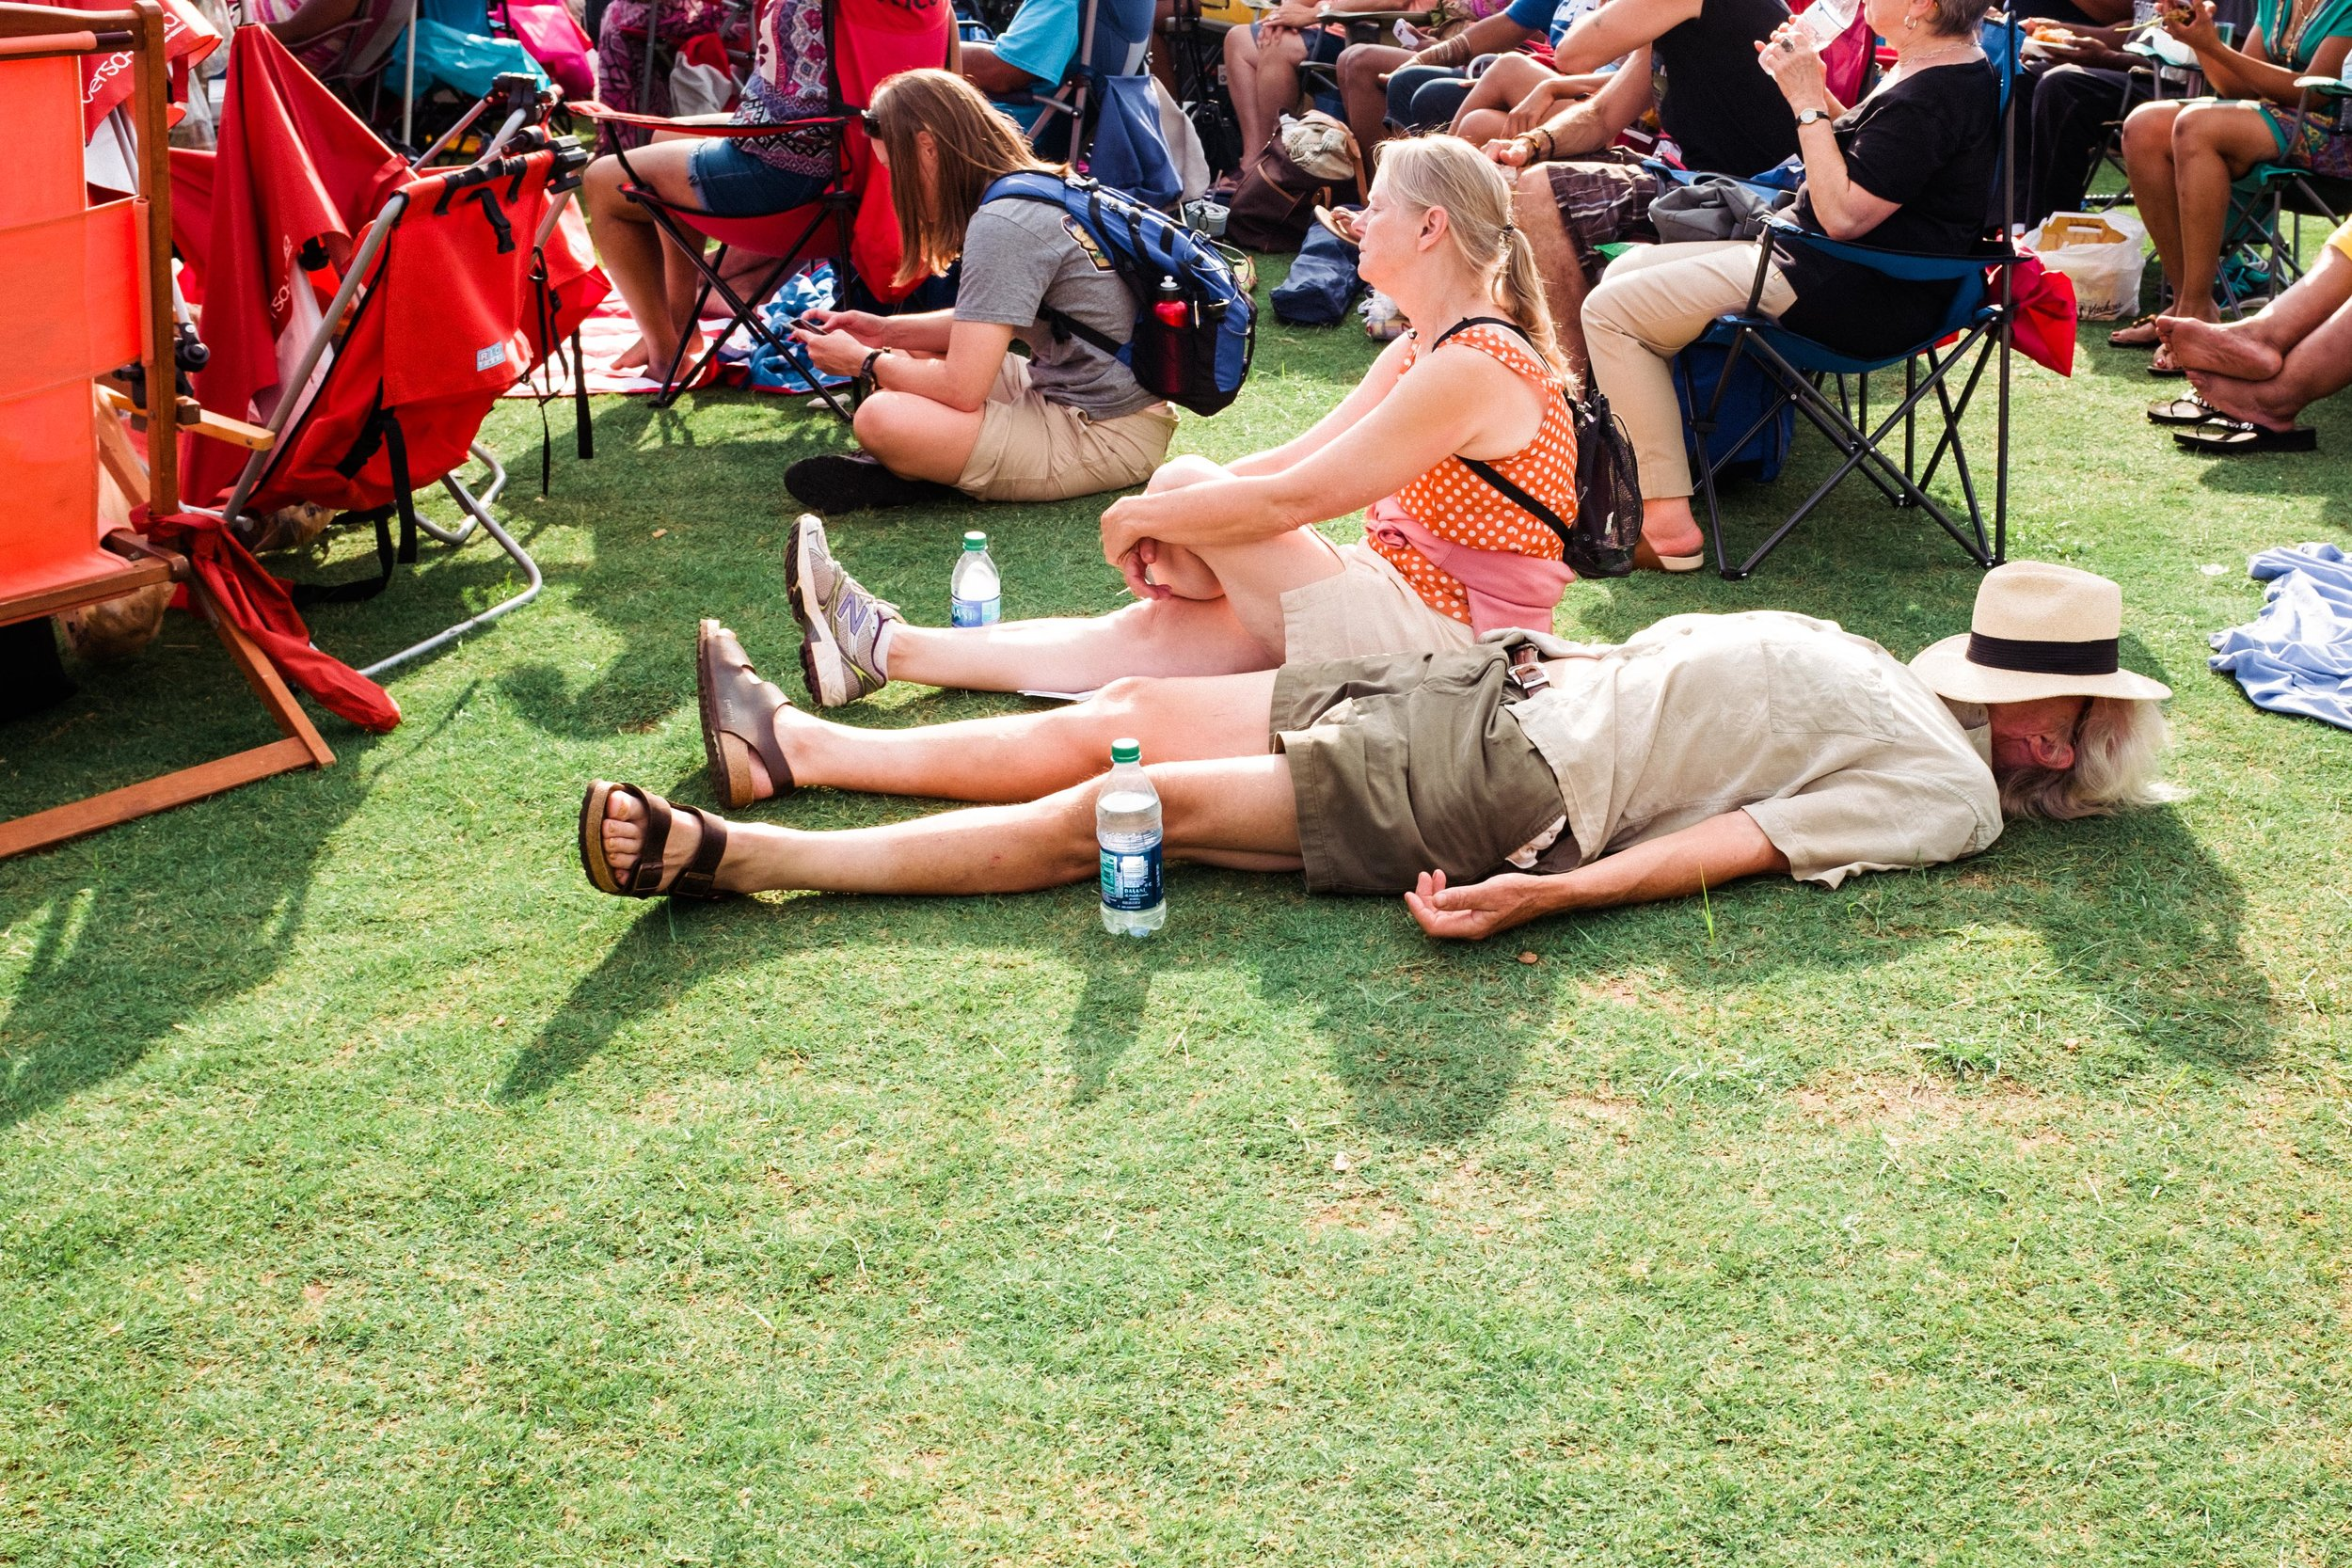 atlanta-jazz-festival-attendees-enjoying-music